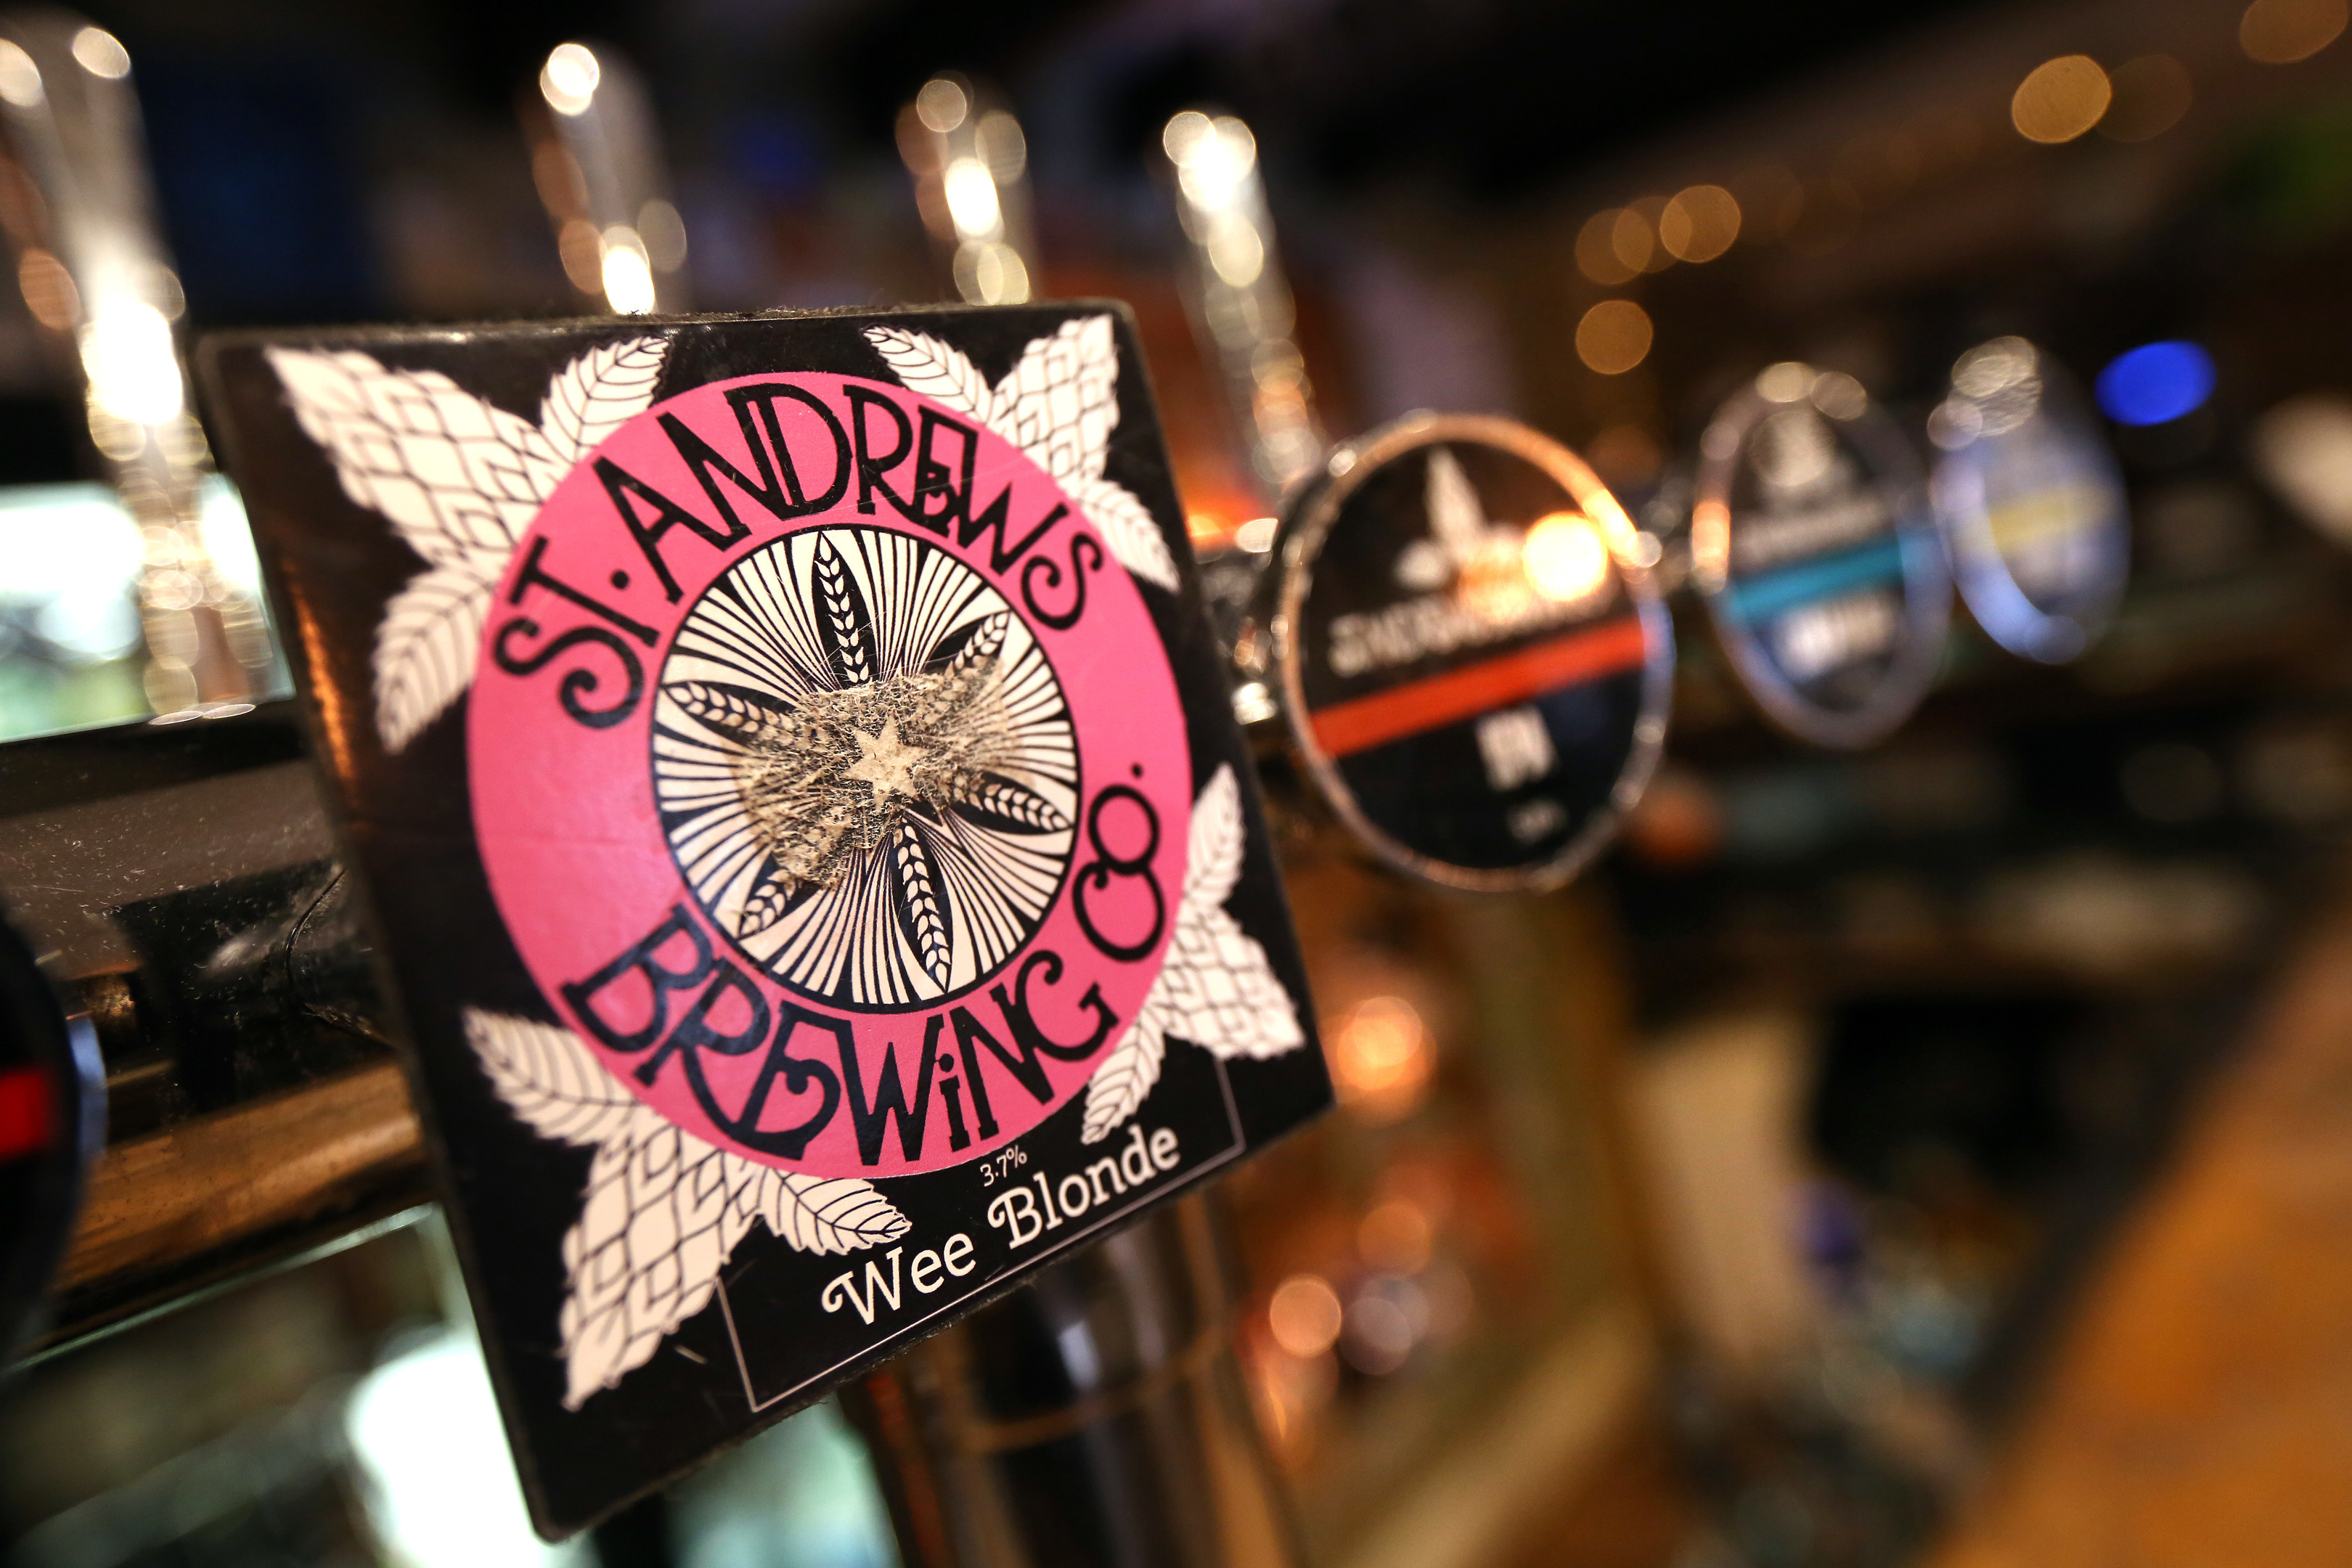 St Andrews Brewing Co. hopes to open a Dundee bar in time for the V&A opening.